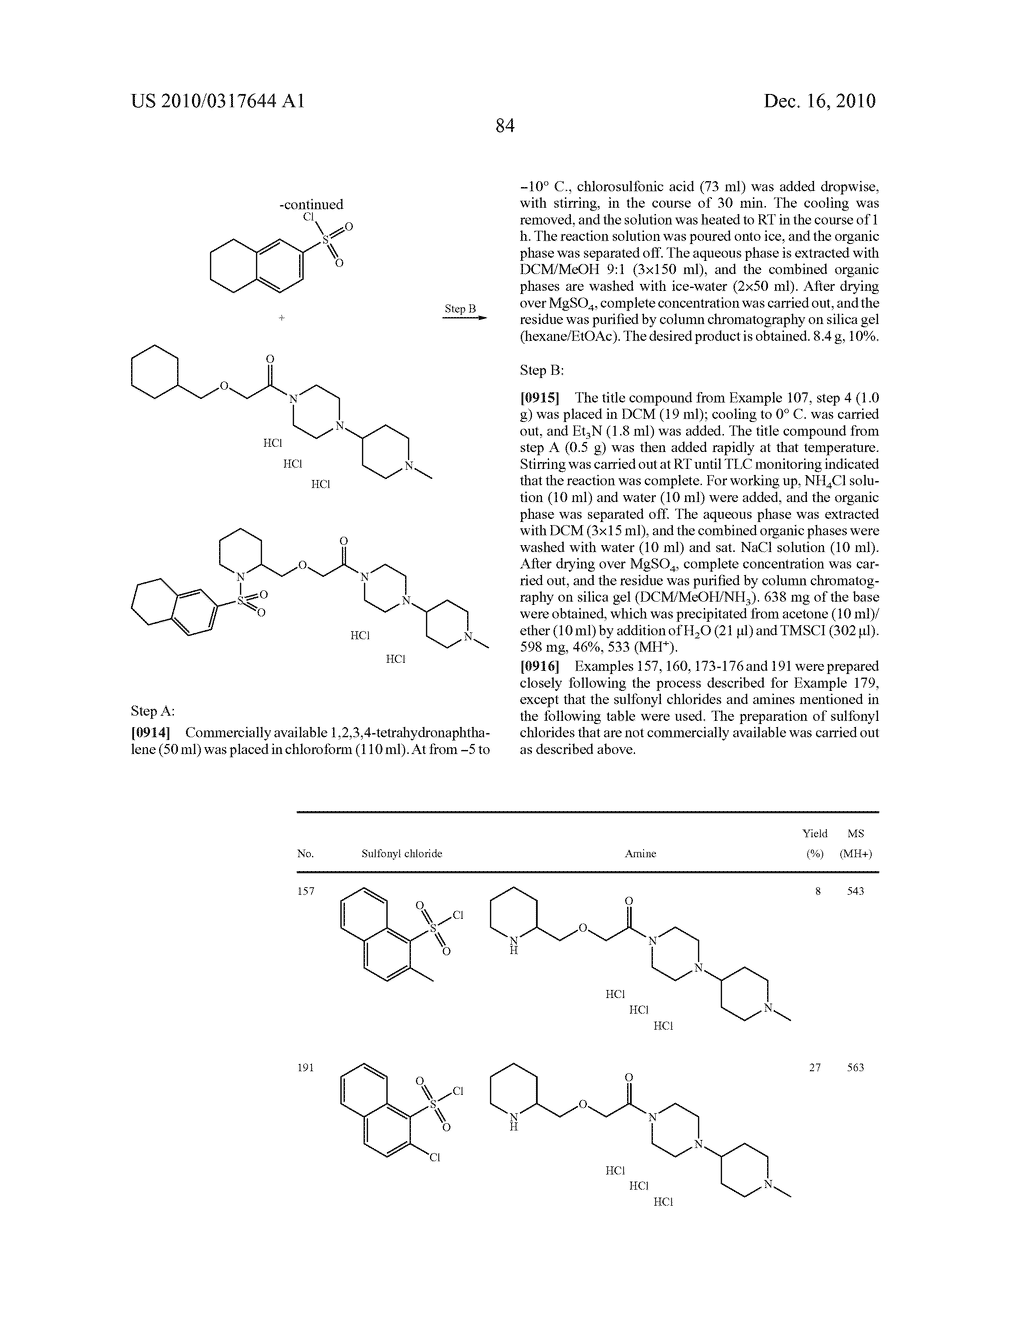 Substituted Sulfonamide Compounds - diagram, schematic, and image 85